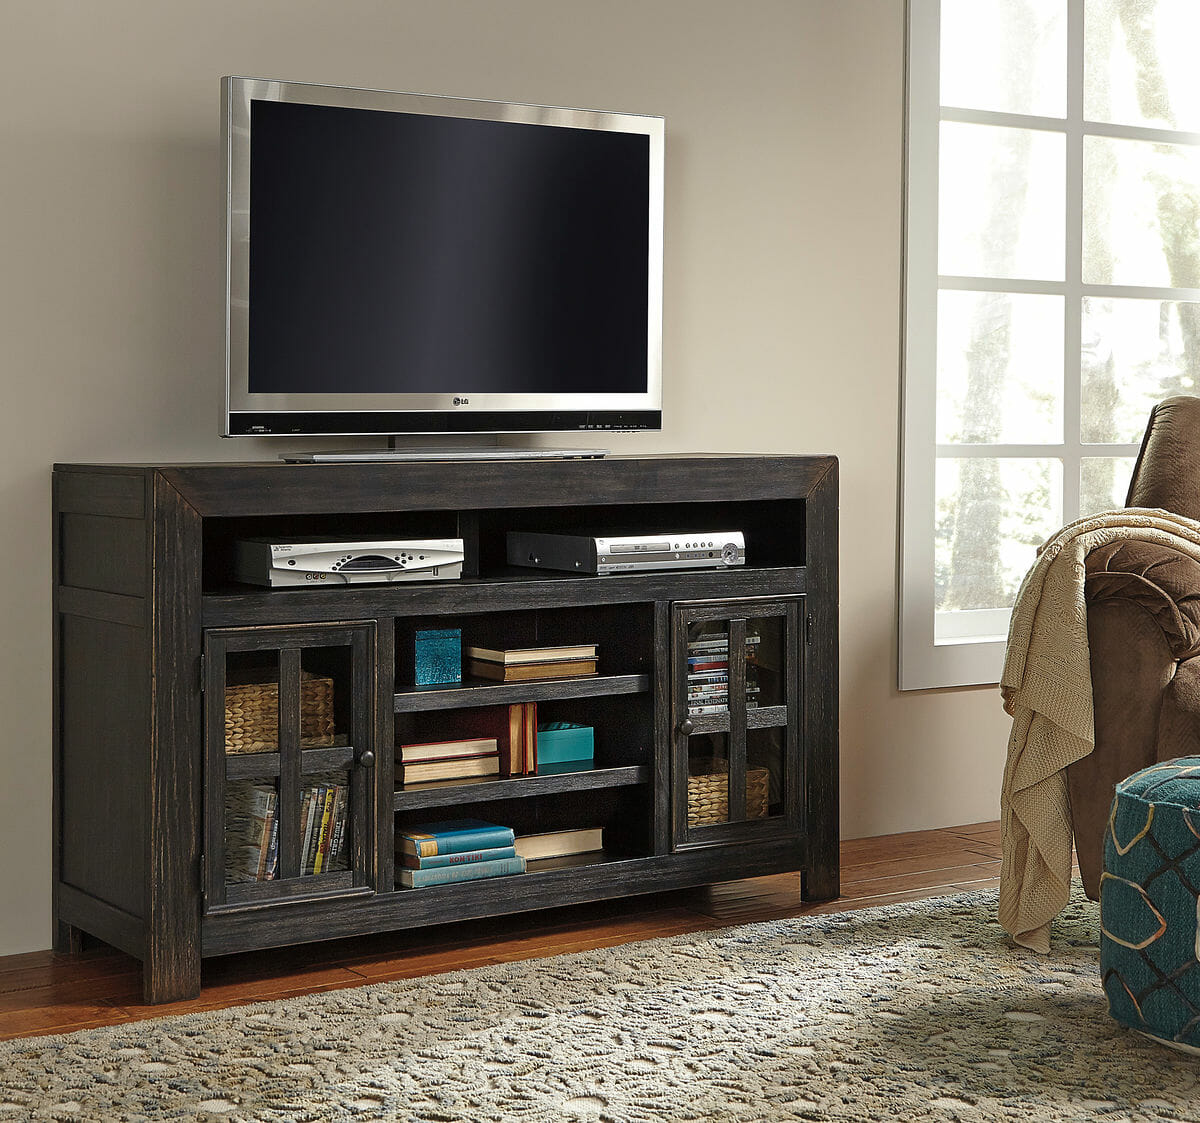 Homestore Gallery: LG TV Stand W/Fireplace Option